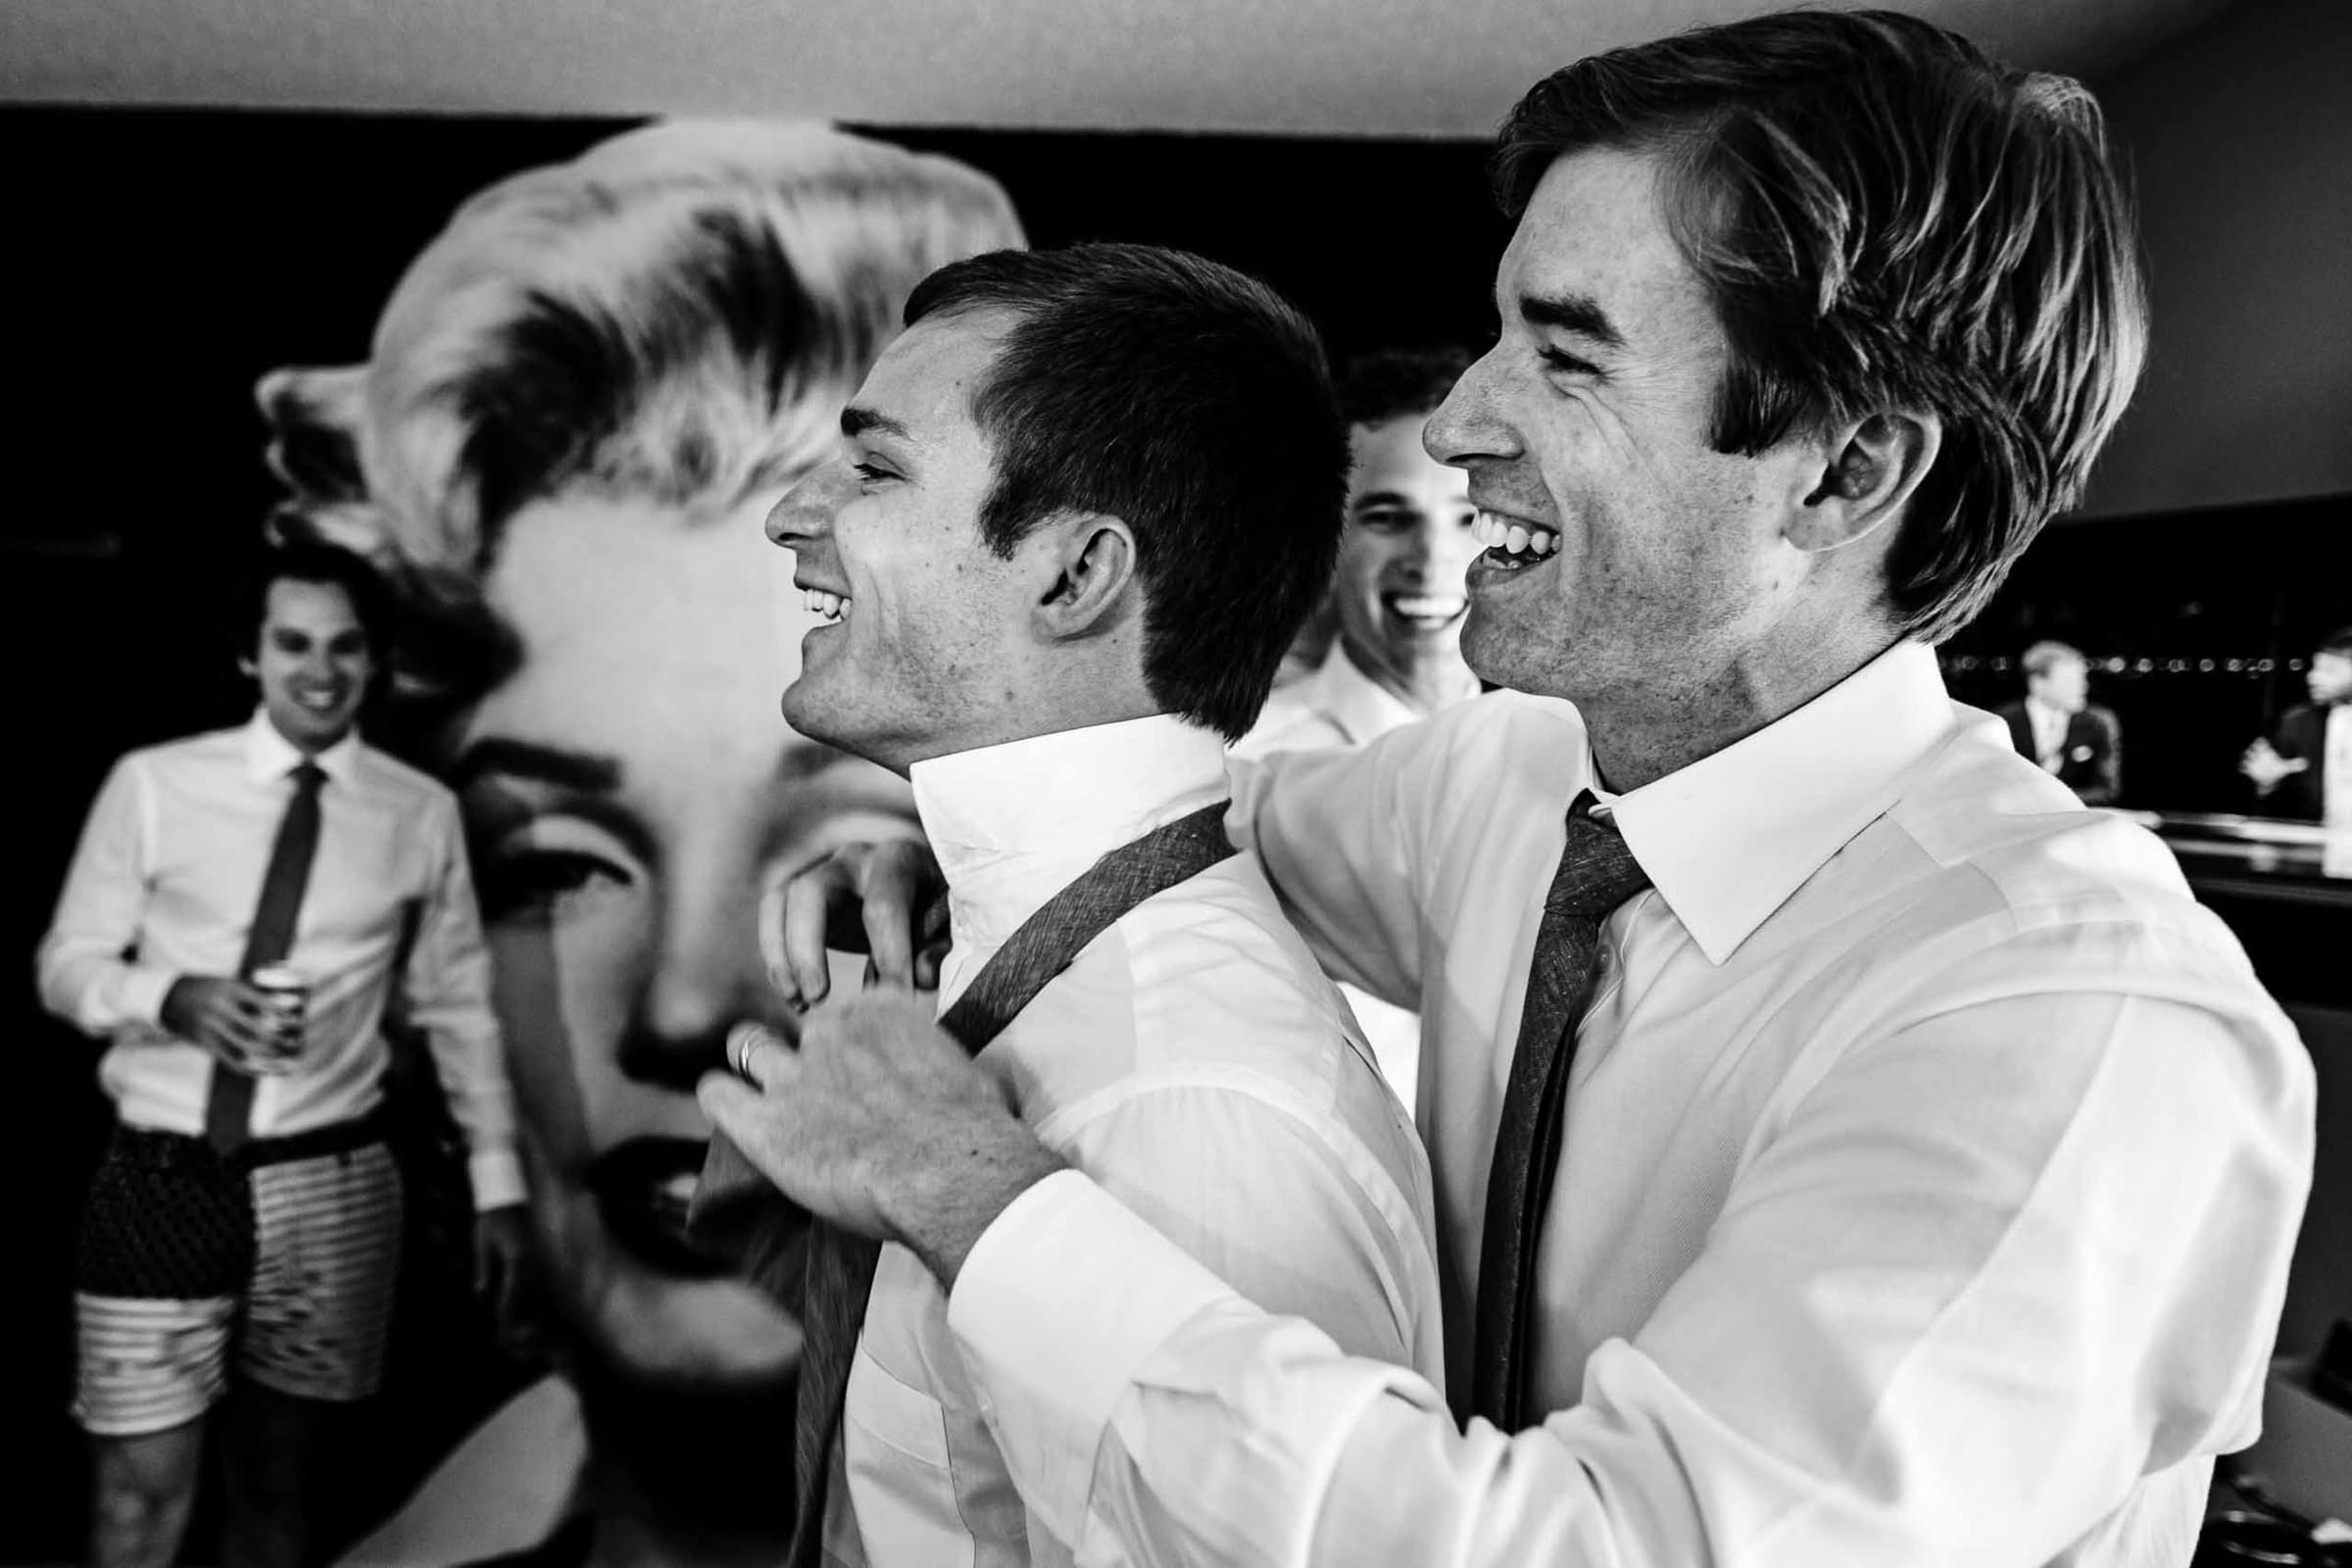 A fun photo of groosmen getting ready at Jupiter Hotel before heading out to their camp angleos wedding